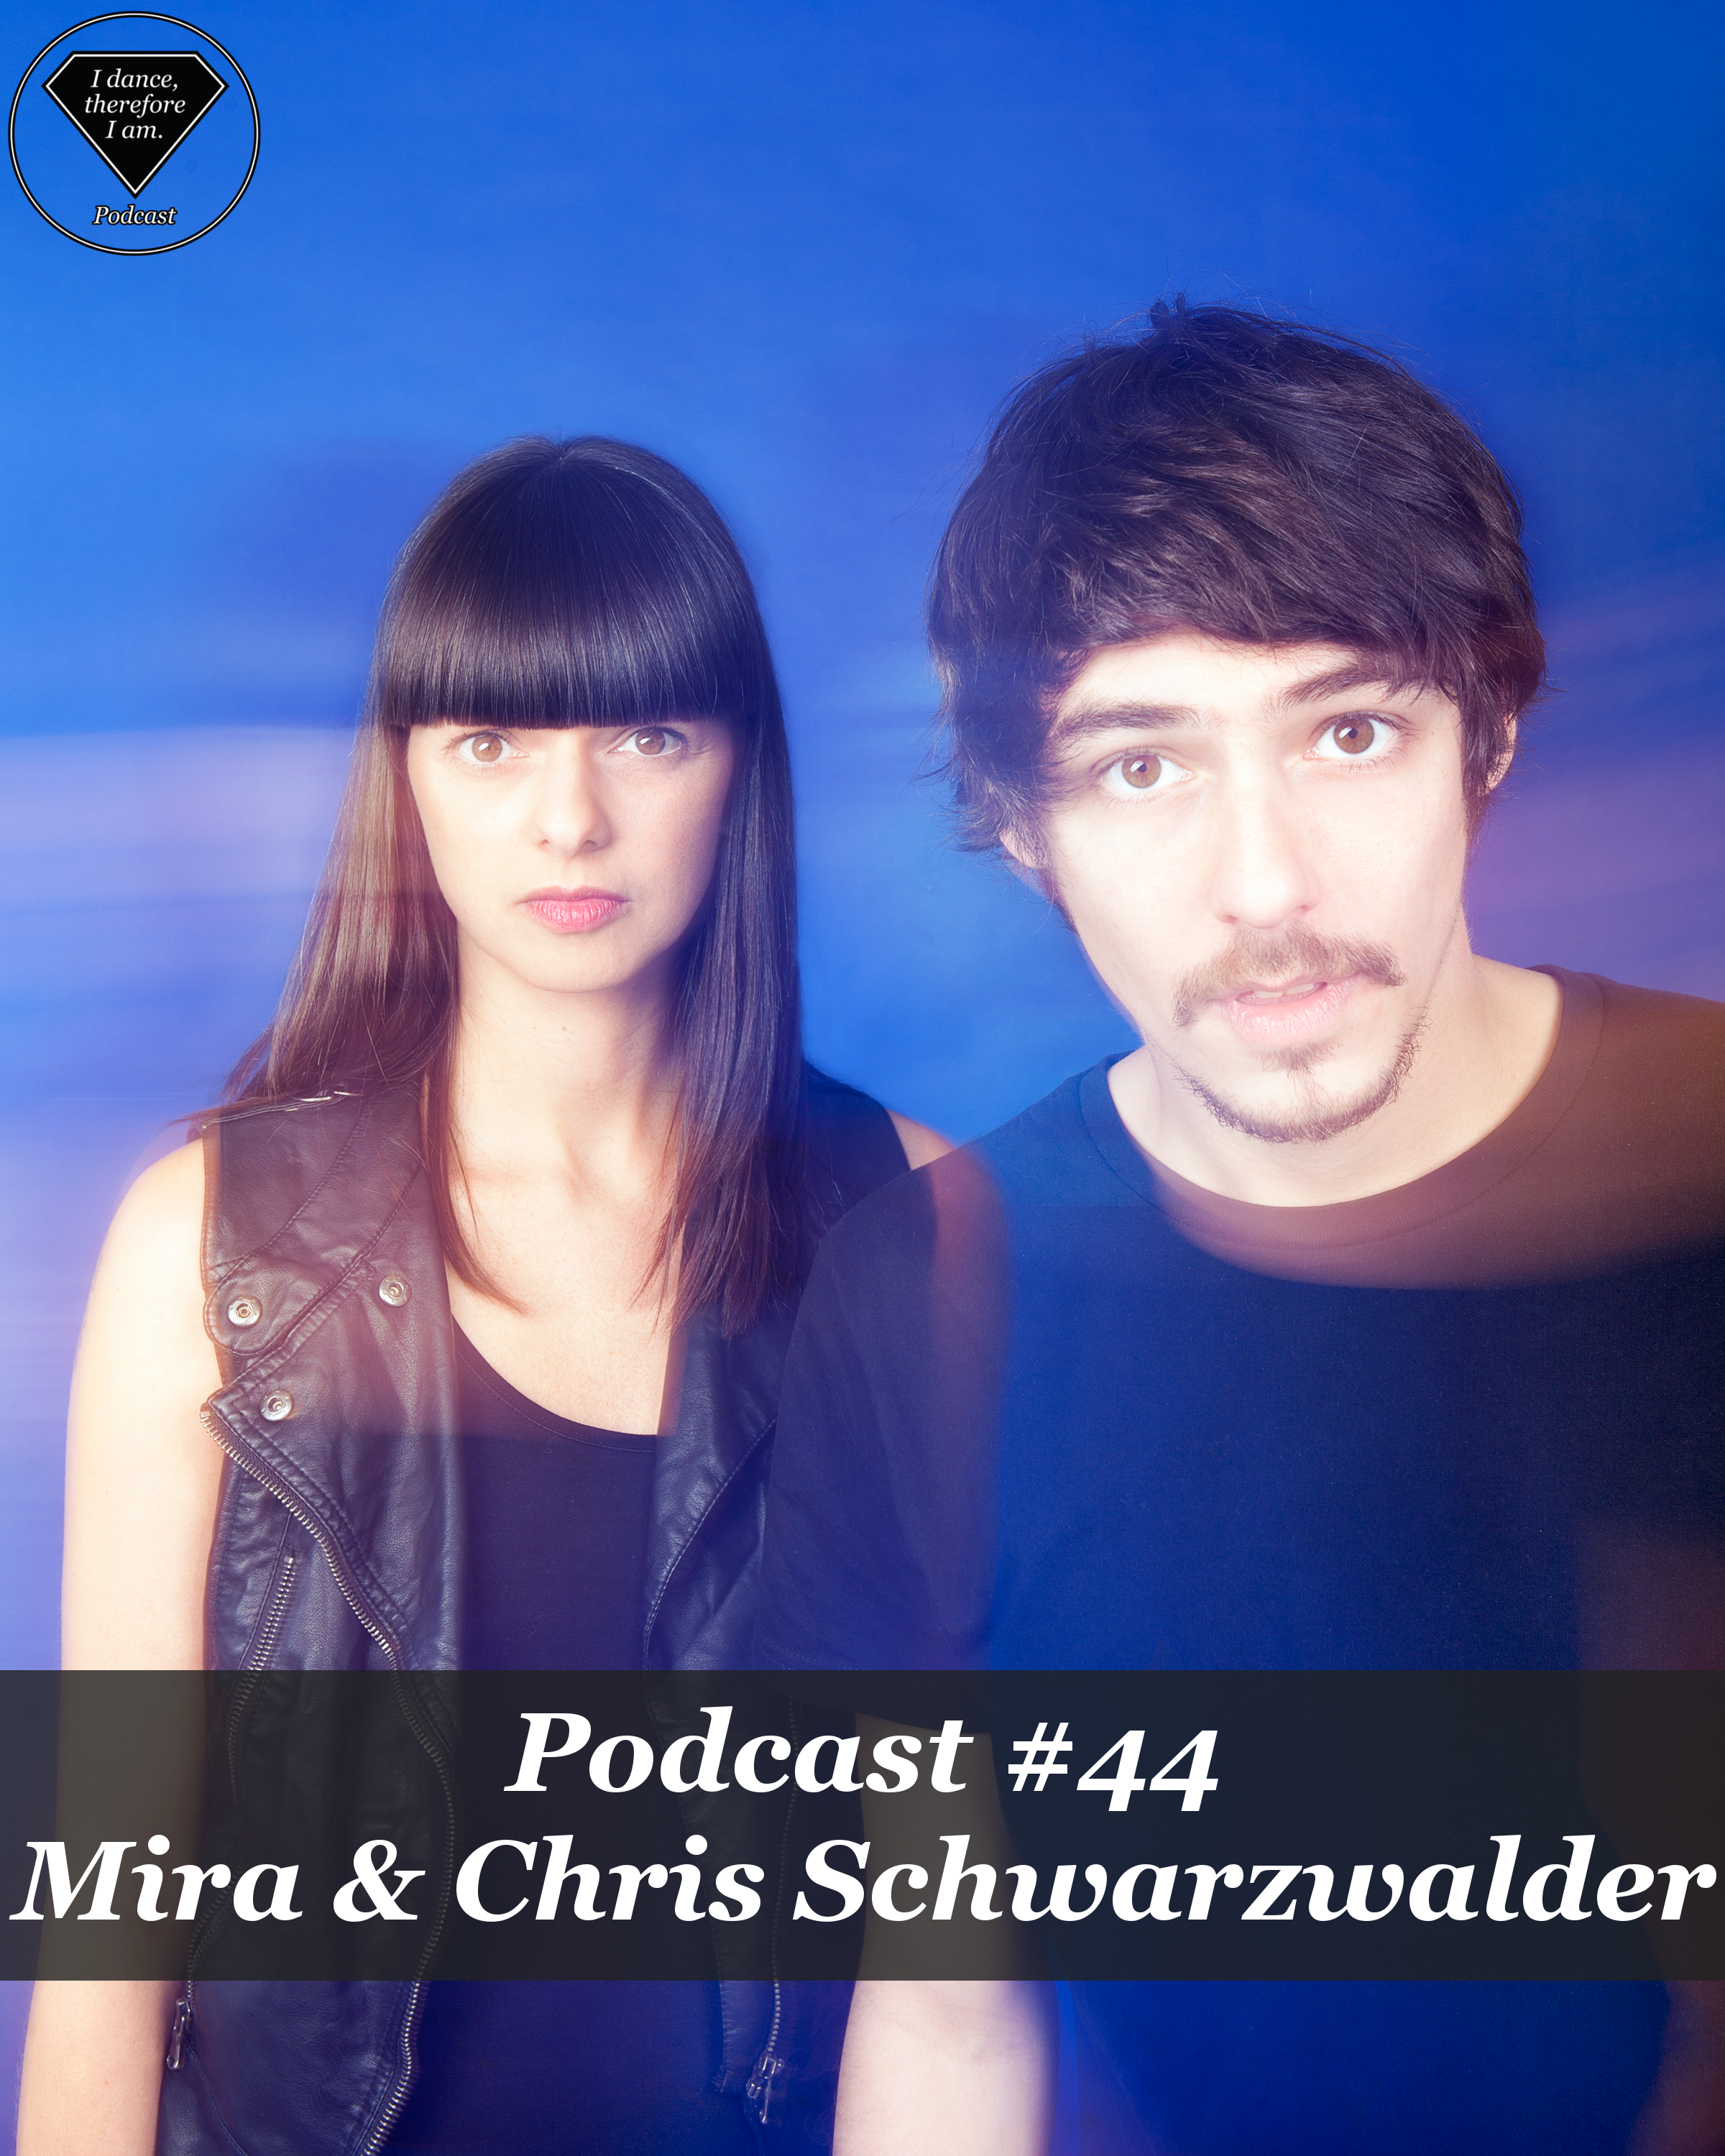 trndmsk Podcast #44 - Mira & Chris Schwarzwalder